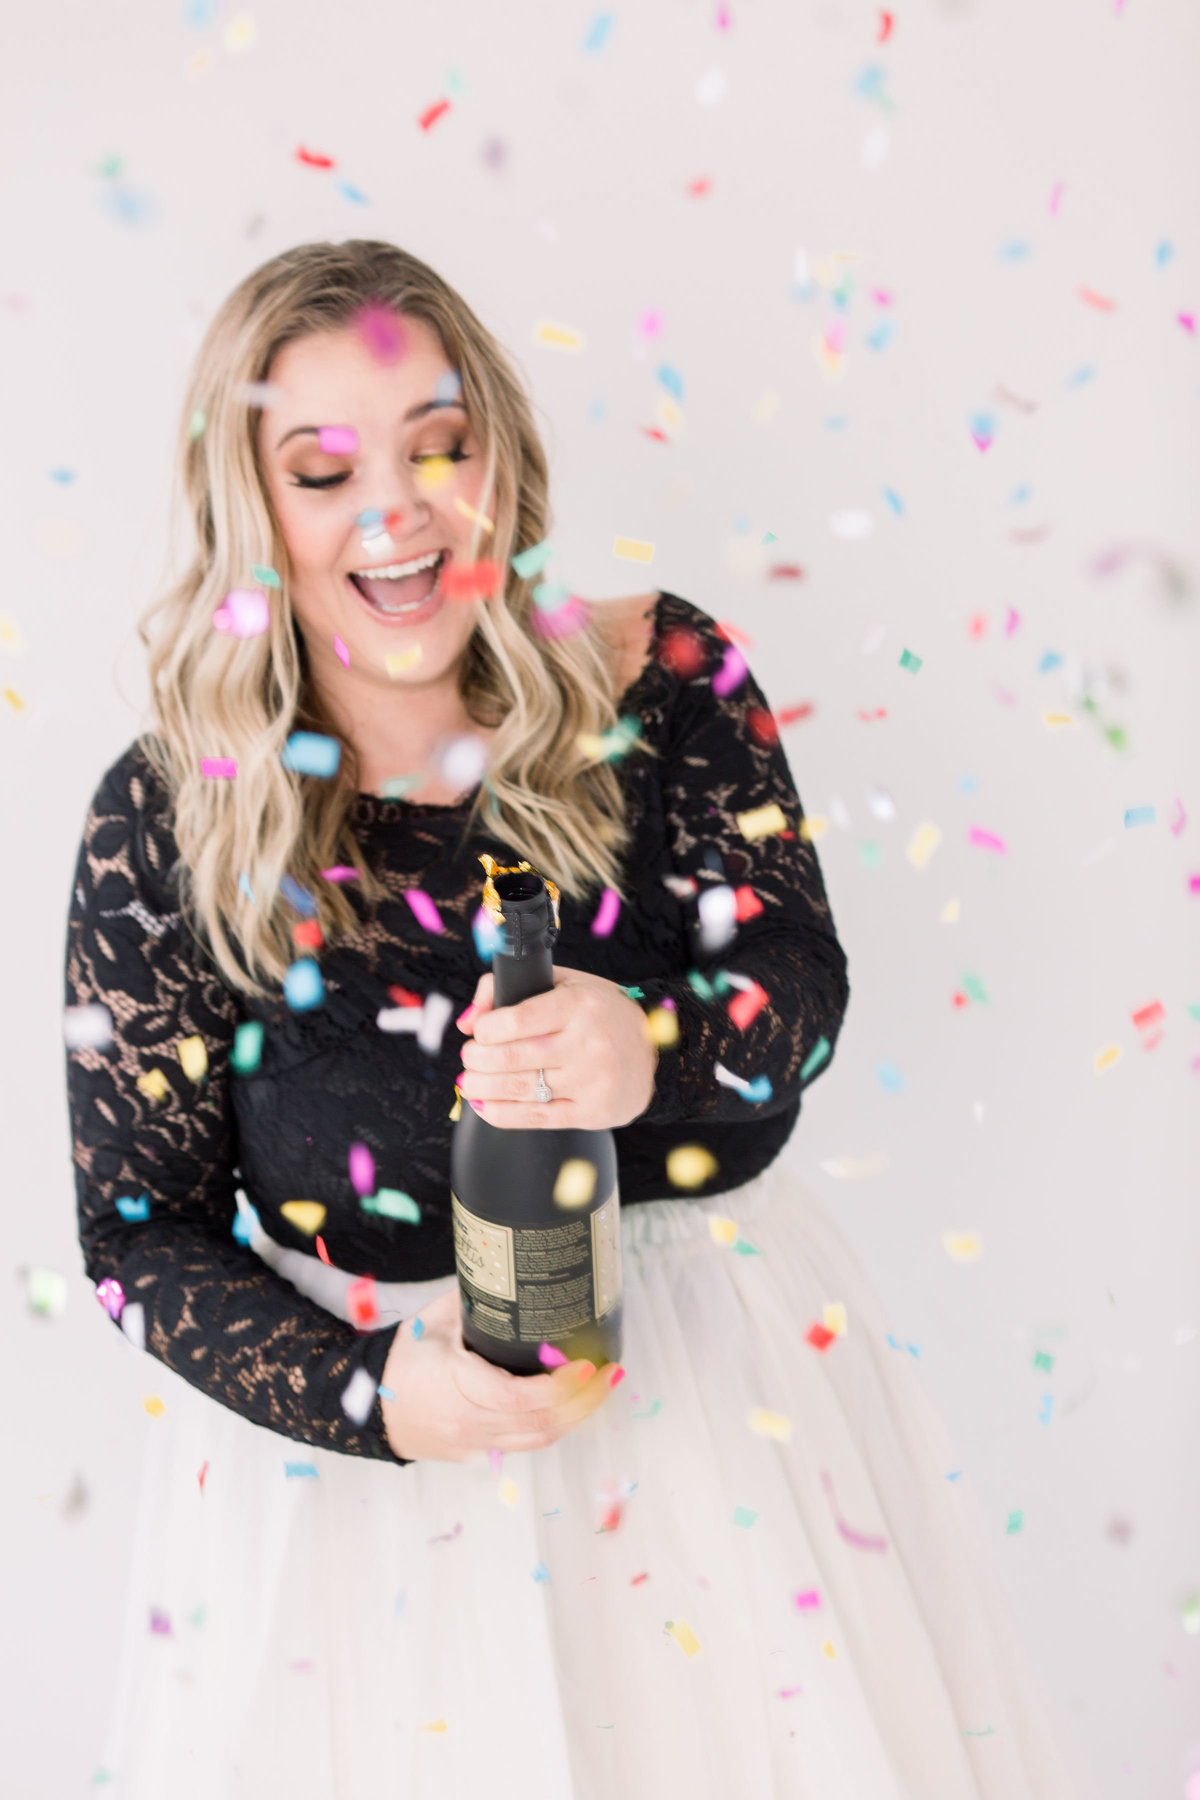 Woman popping bottle of champagne with confetti